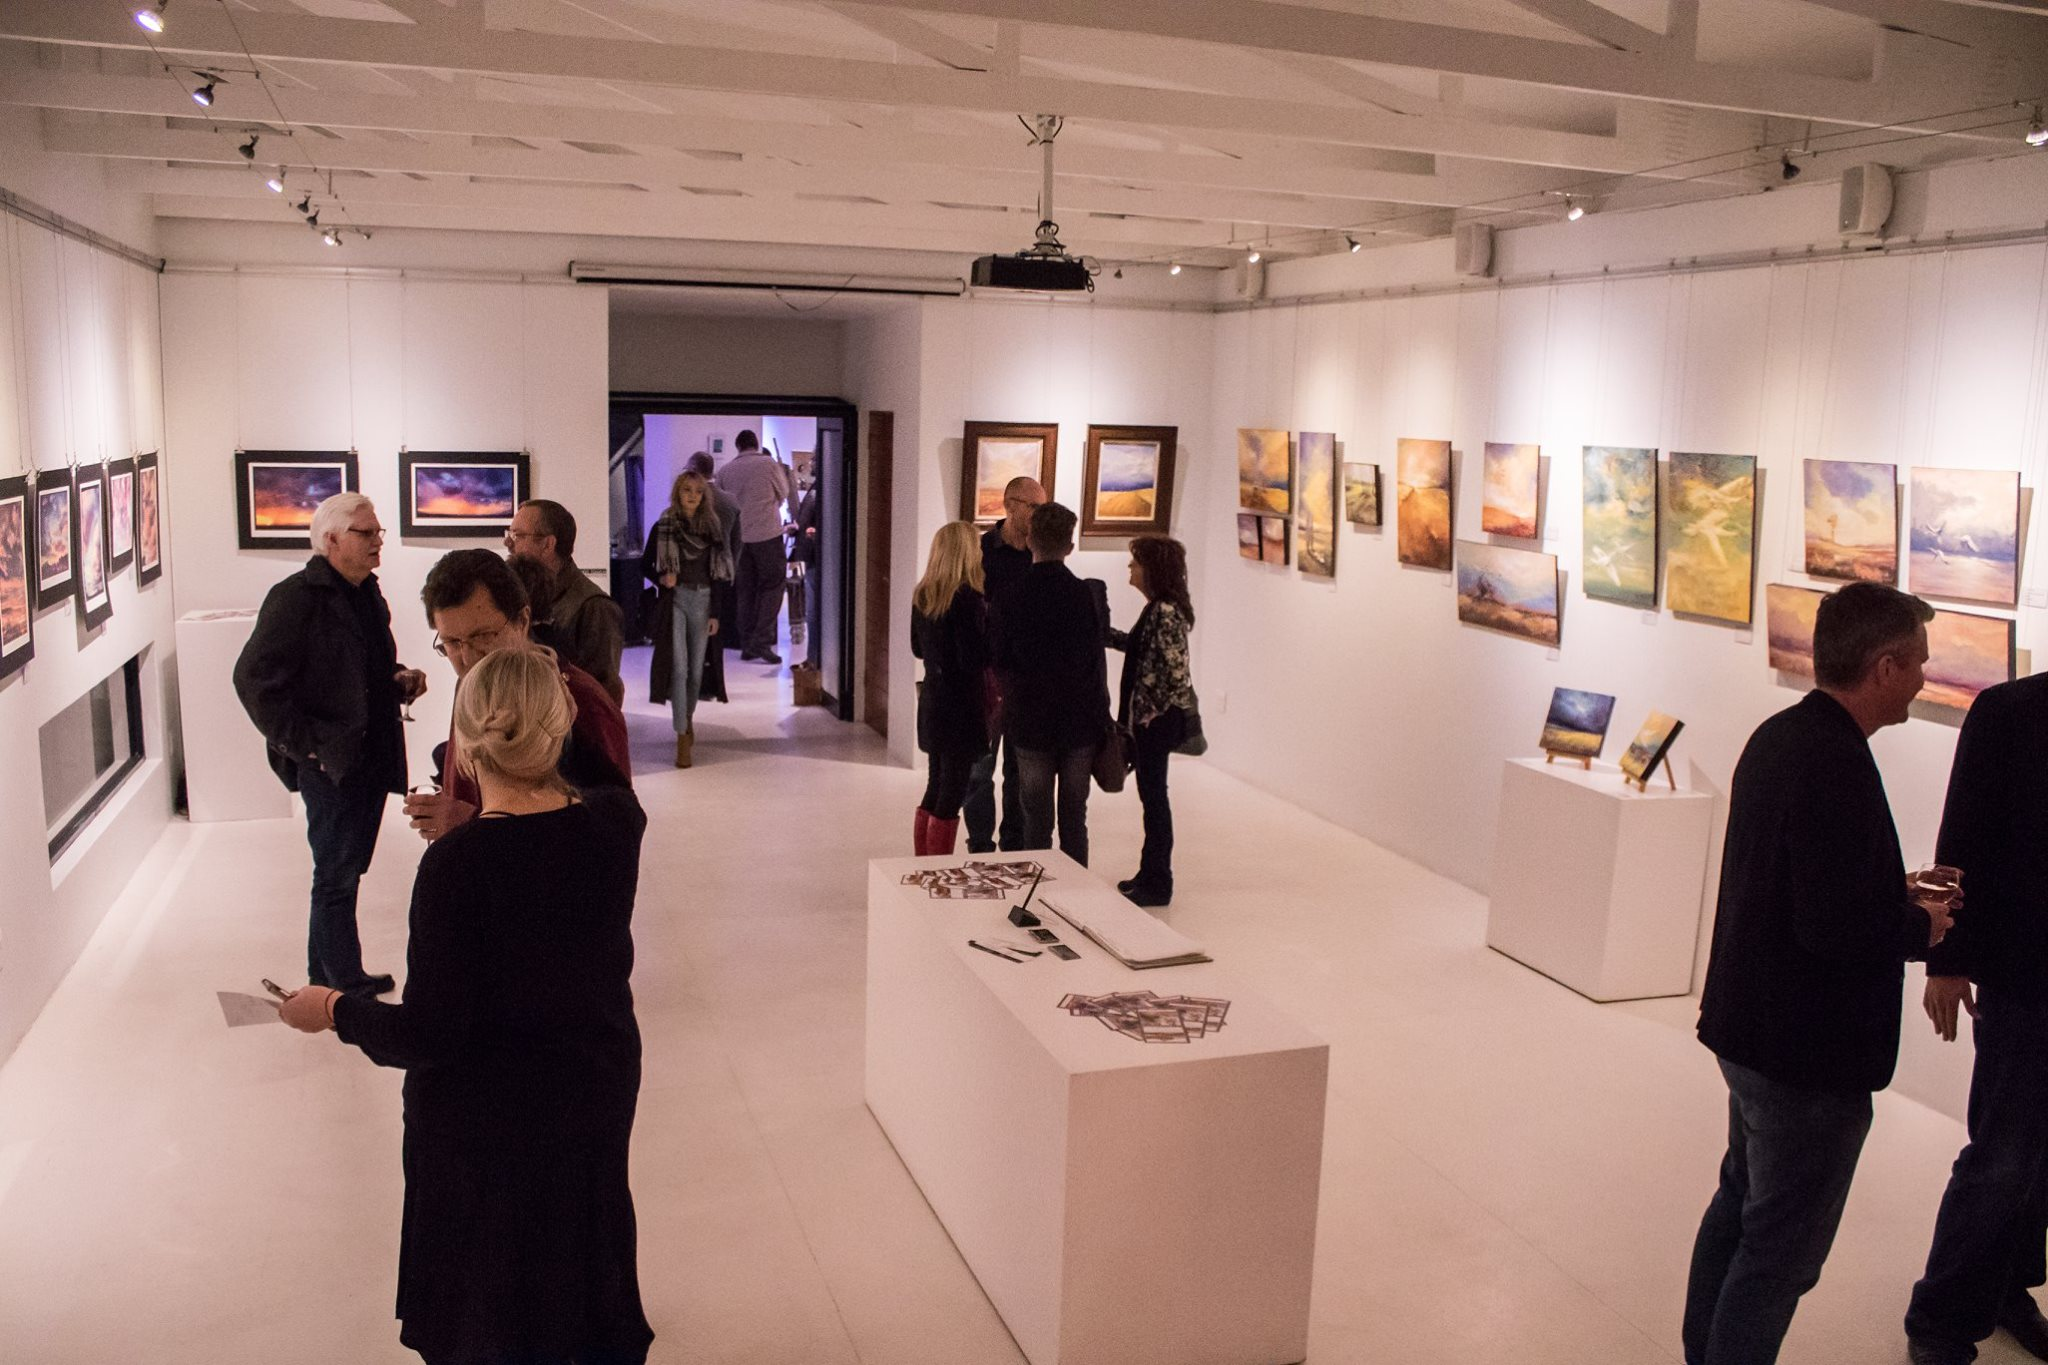 Guests at the opening night of our art exhibition.